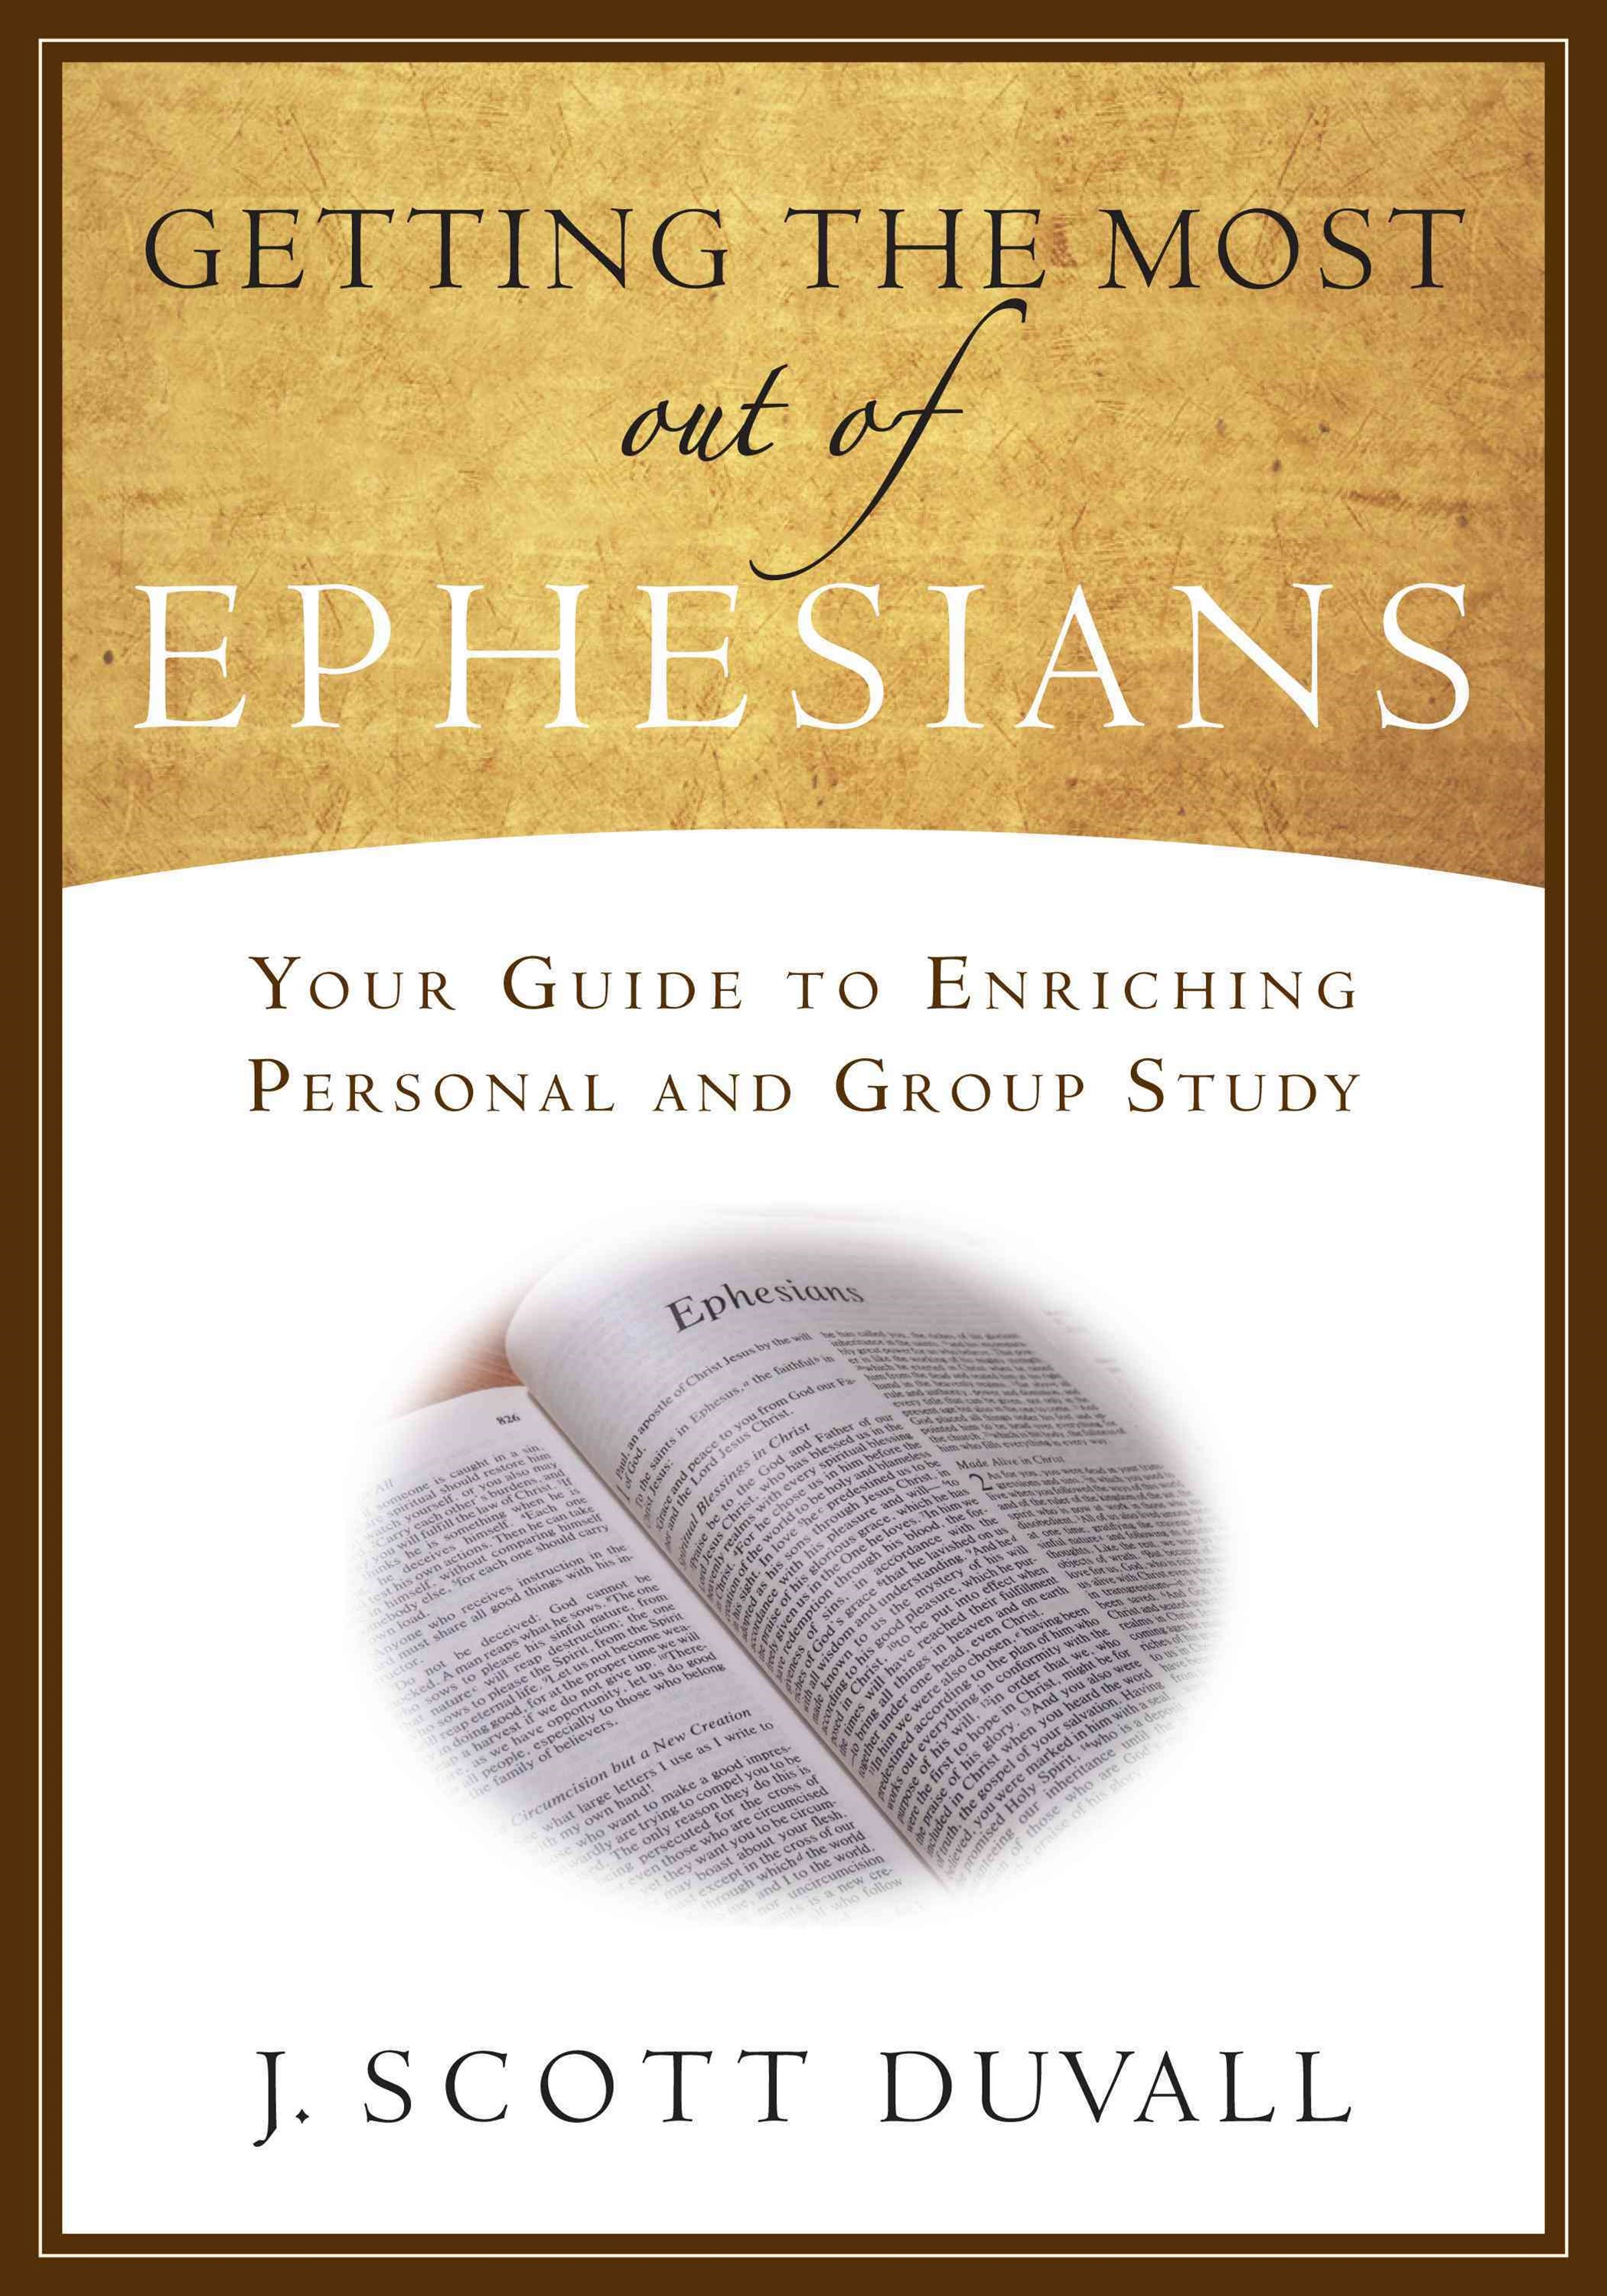 Getting the Most Out of Ephesians